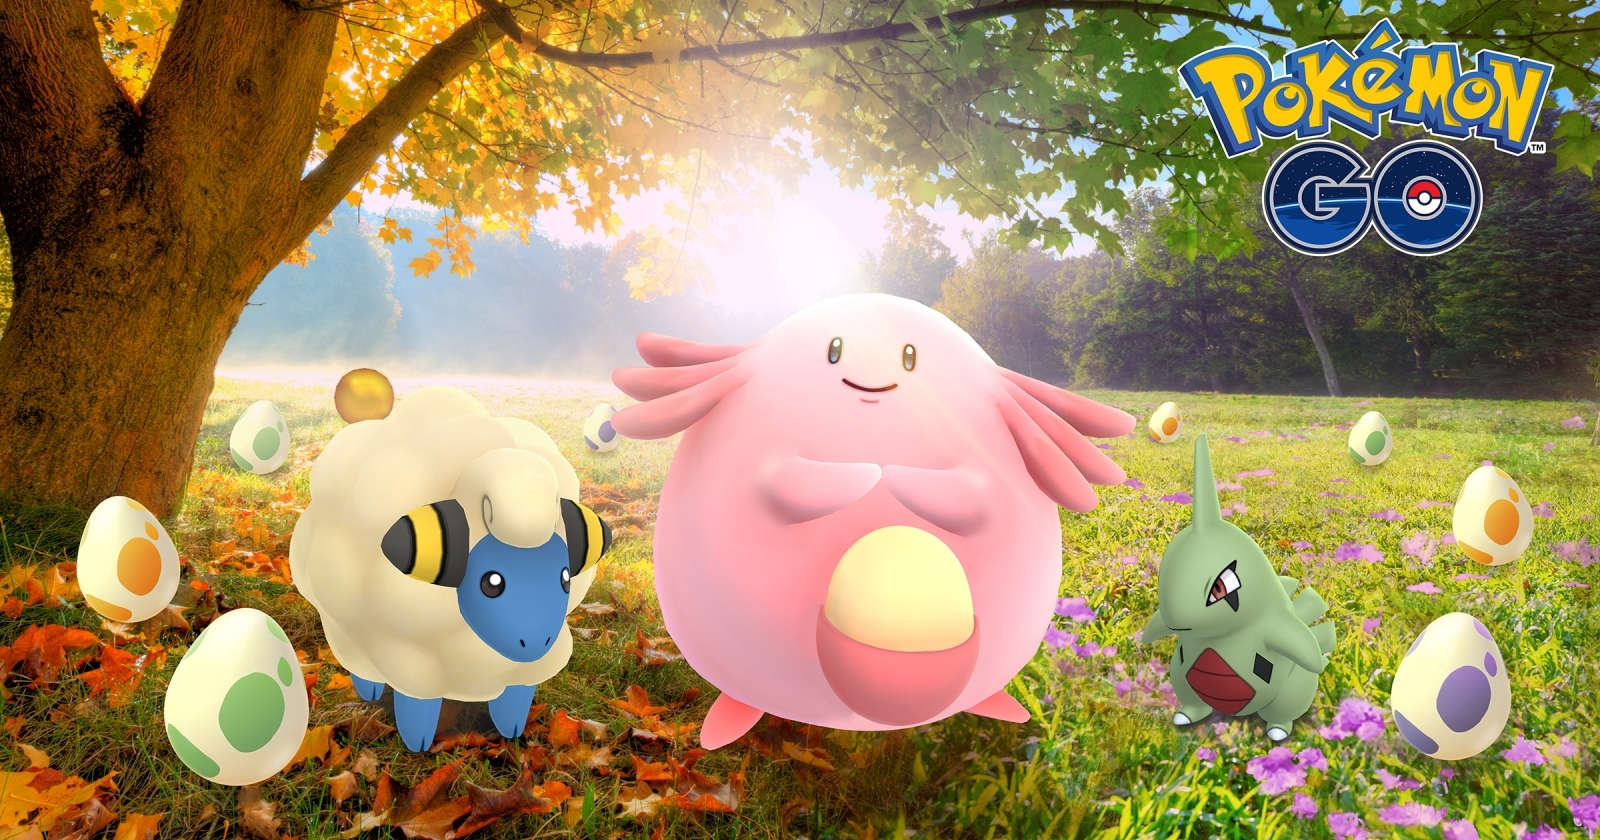 Pokémon Go introduces Super Incubators in Equinox event